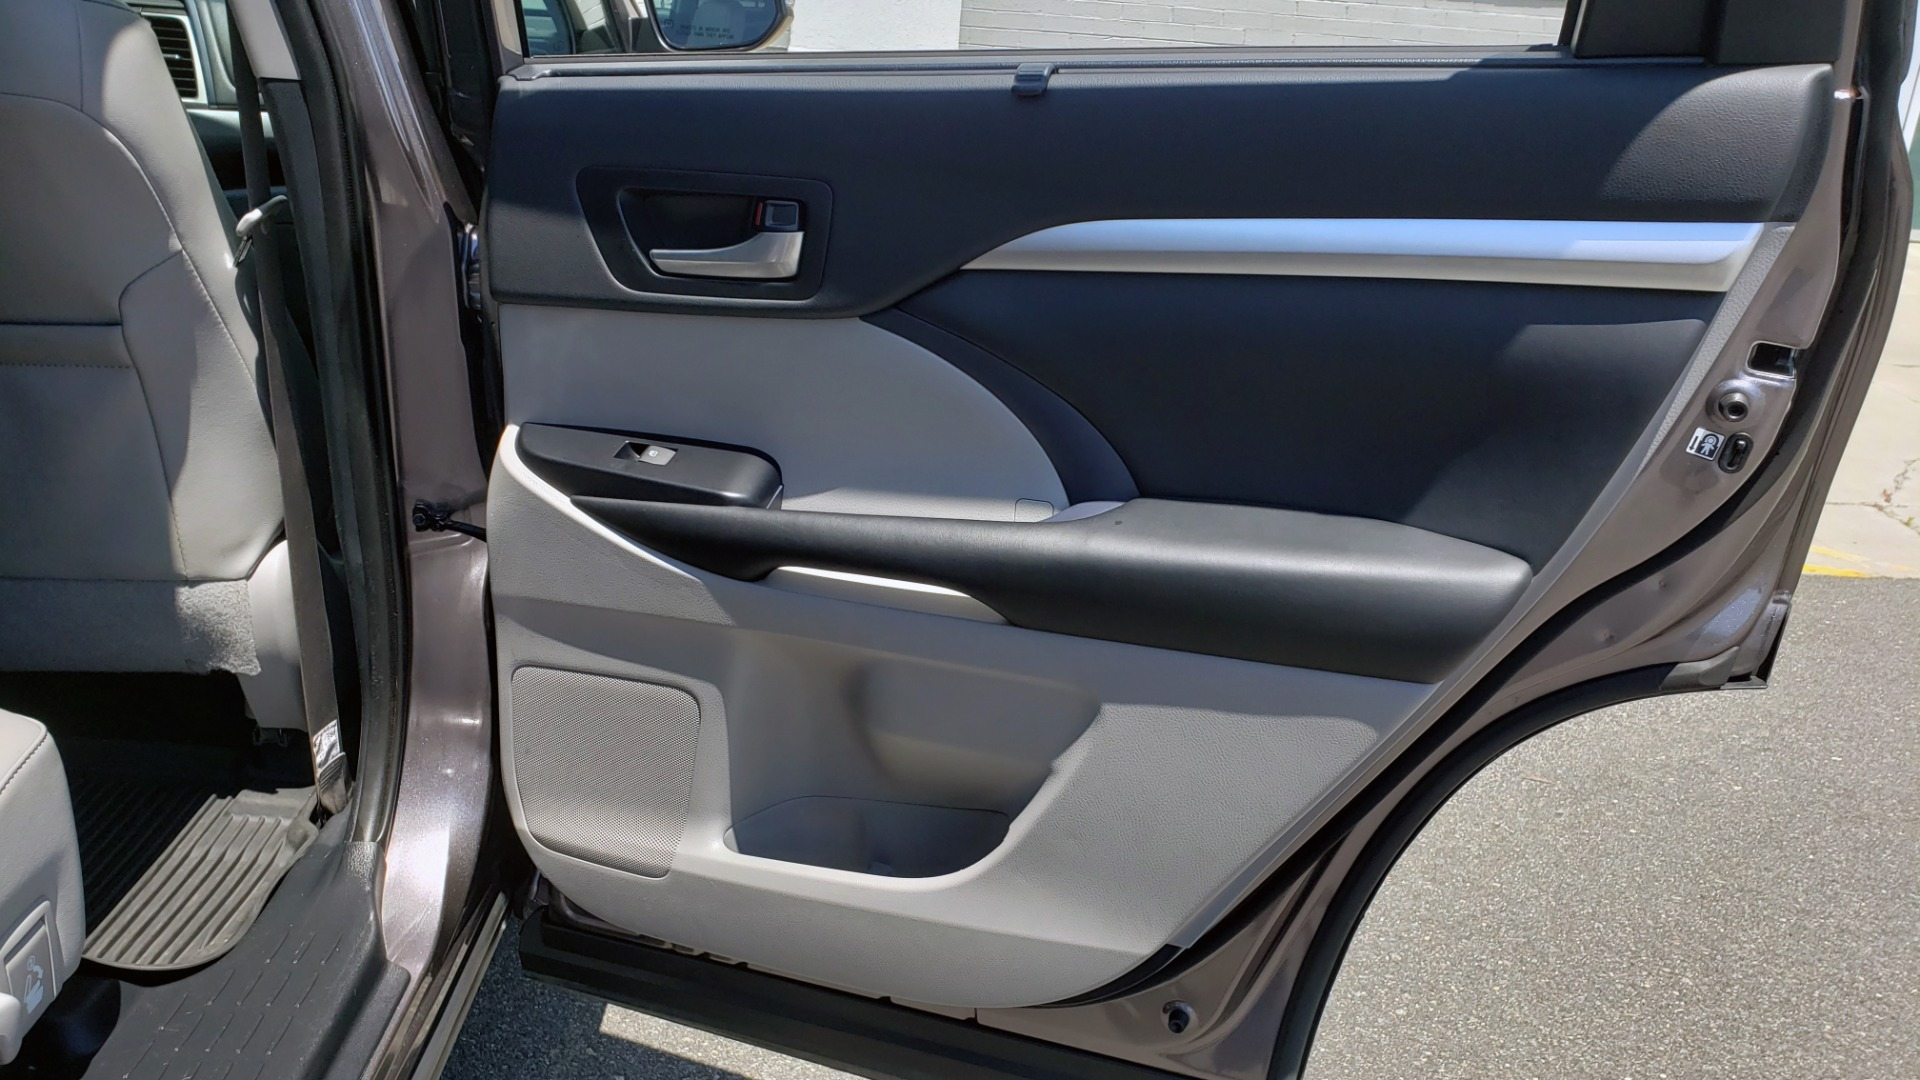 Used 2019 Toyota HIGHLANDER XLE / 3.5L V6 / AWD / LEATHER / 8-SPD AUTO / 1-OWNER for sale $37,500 at Formula Imports in Charlotte NC 28227 71